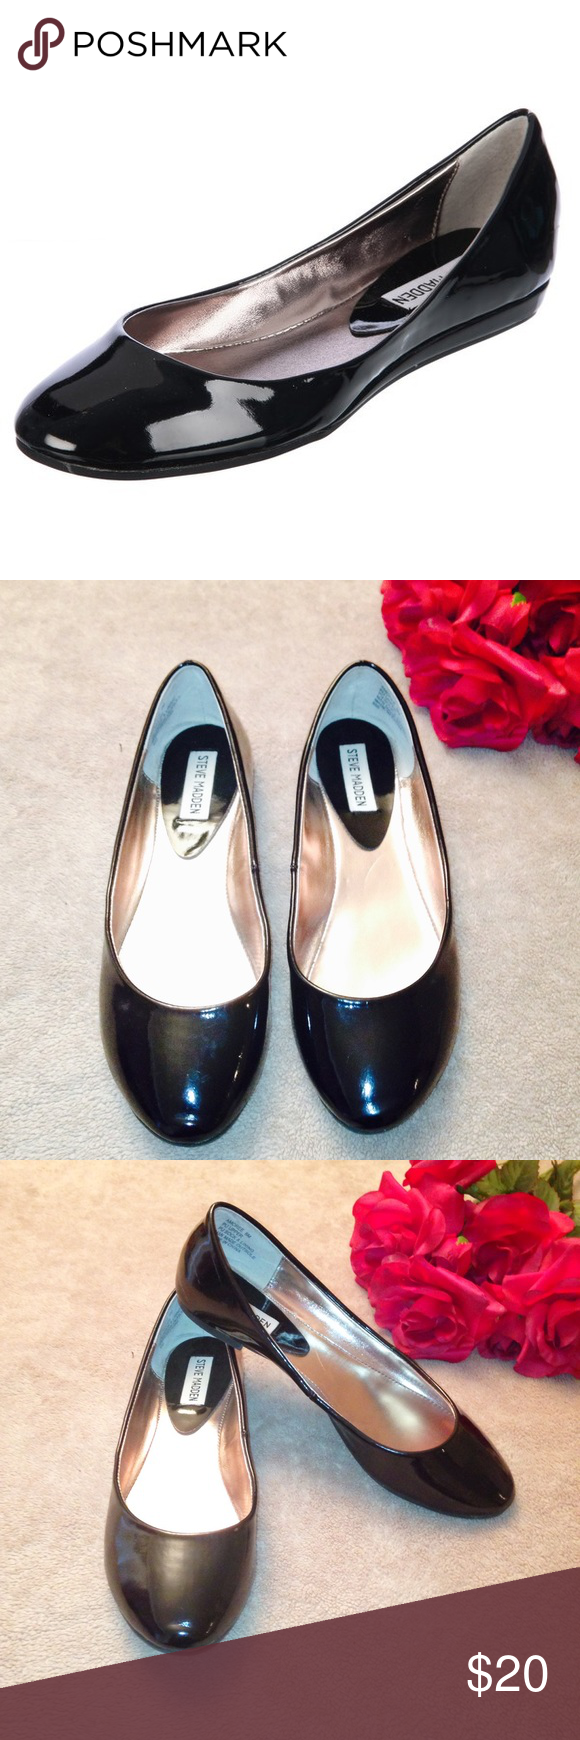 Steve Madden Flats ❤️ Great condition ❤️ Comes from a smoke-free home ❤️ No trades or holds ❤️ Please send price offers through Poshmark's negotiation system. ❤️Thanks! Steve Madden Shoes Flats & Loafers